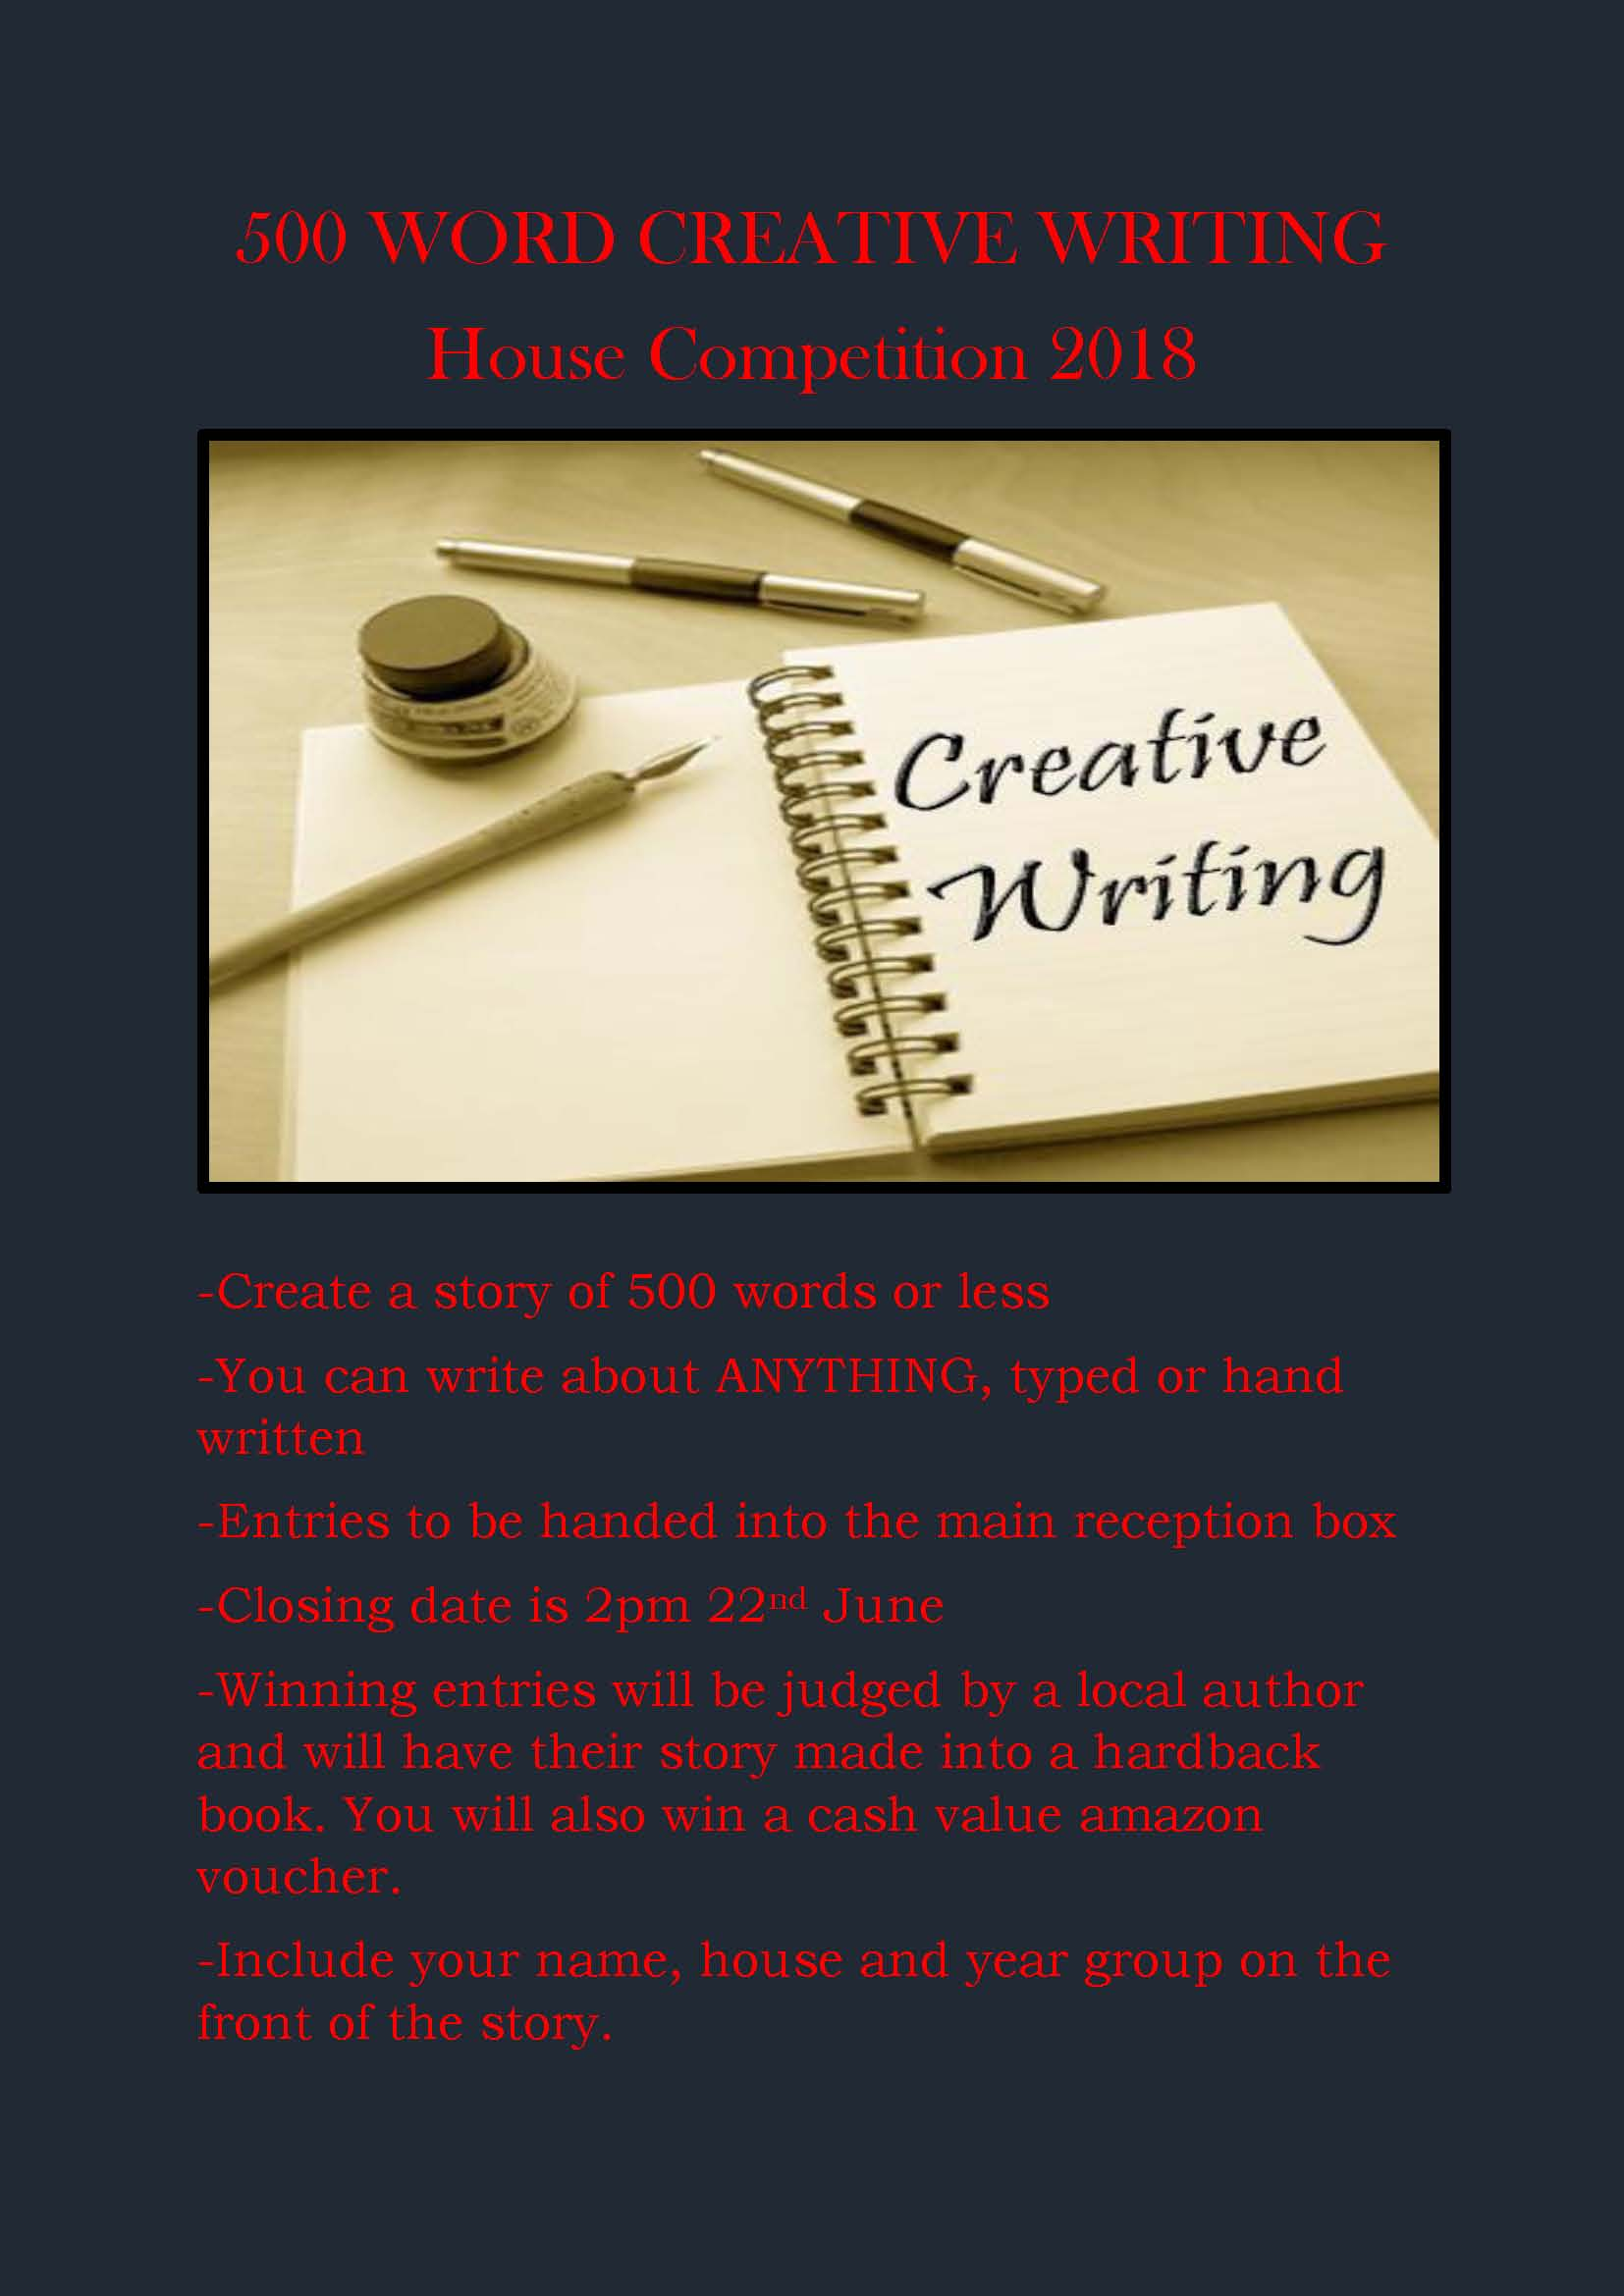 500 WORD CREATIVE WRITING POSTER